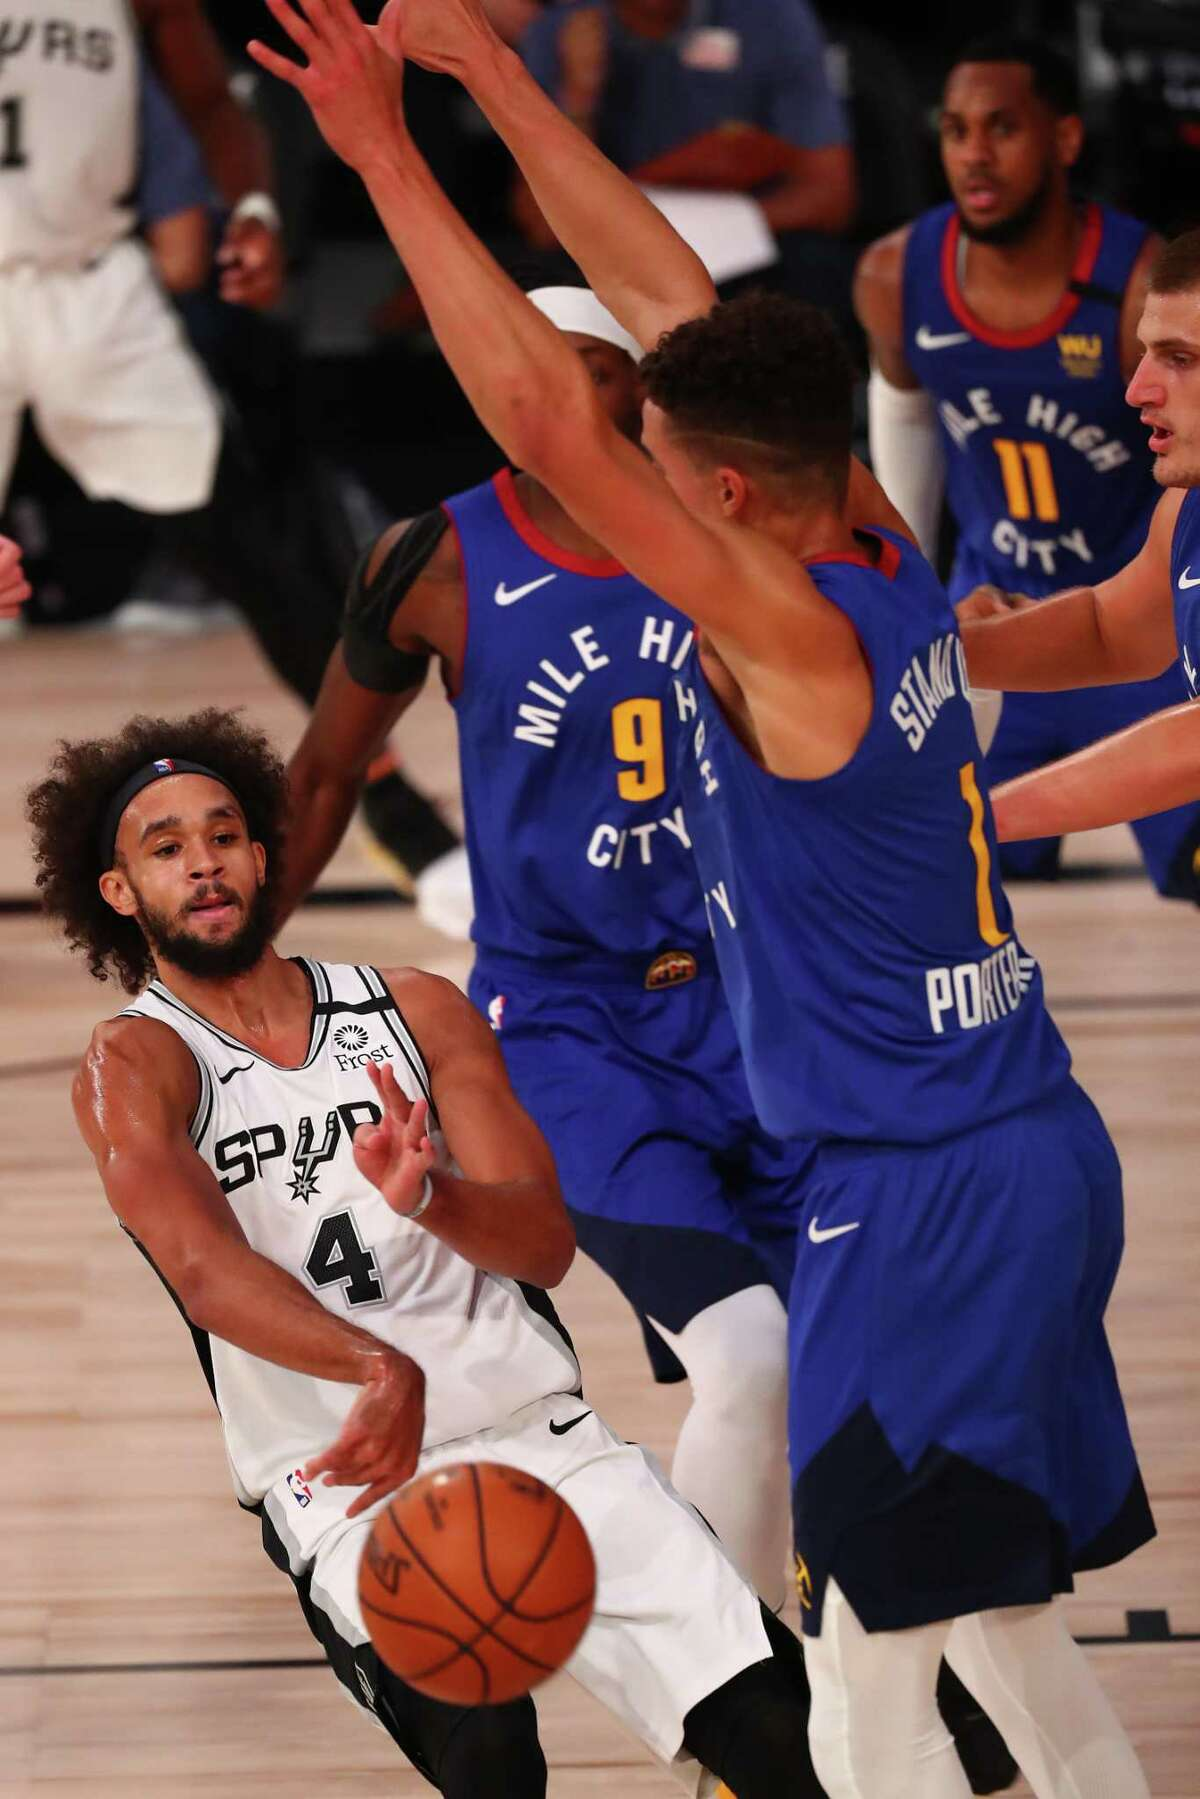 The Spurs' Derrick White (4) passes around the Nuggets' Michael Porter Jr. during the second half Wednesday at the Visa Athletic Center in Lake Buena Vista, Fla. White finished with 23 points and seven assists in the loss.